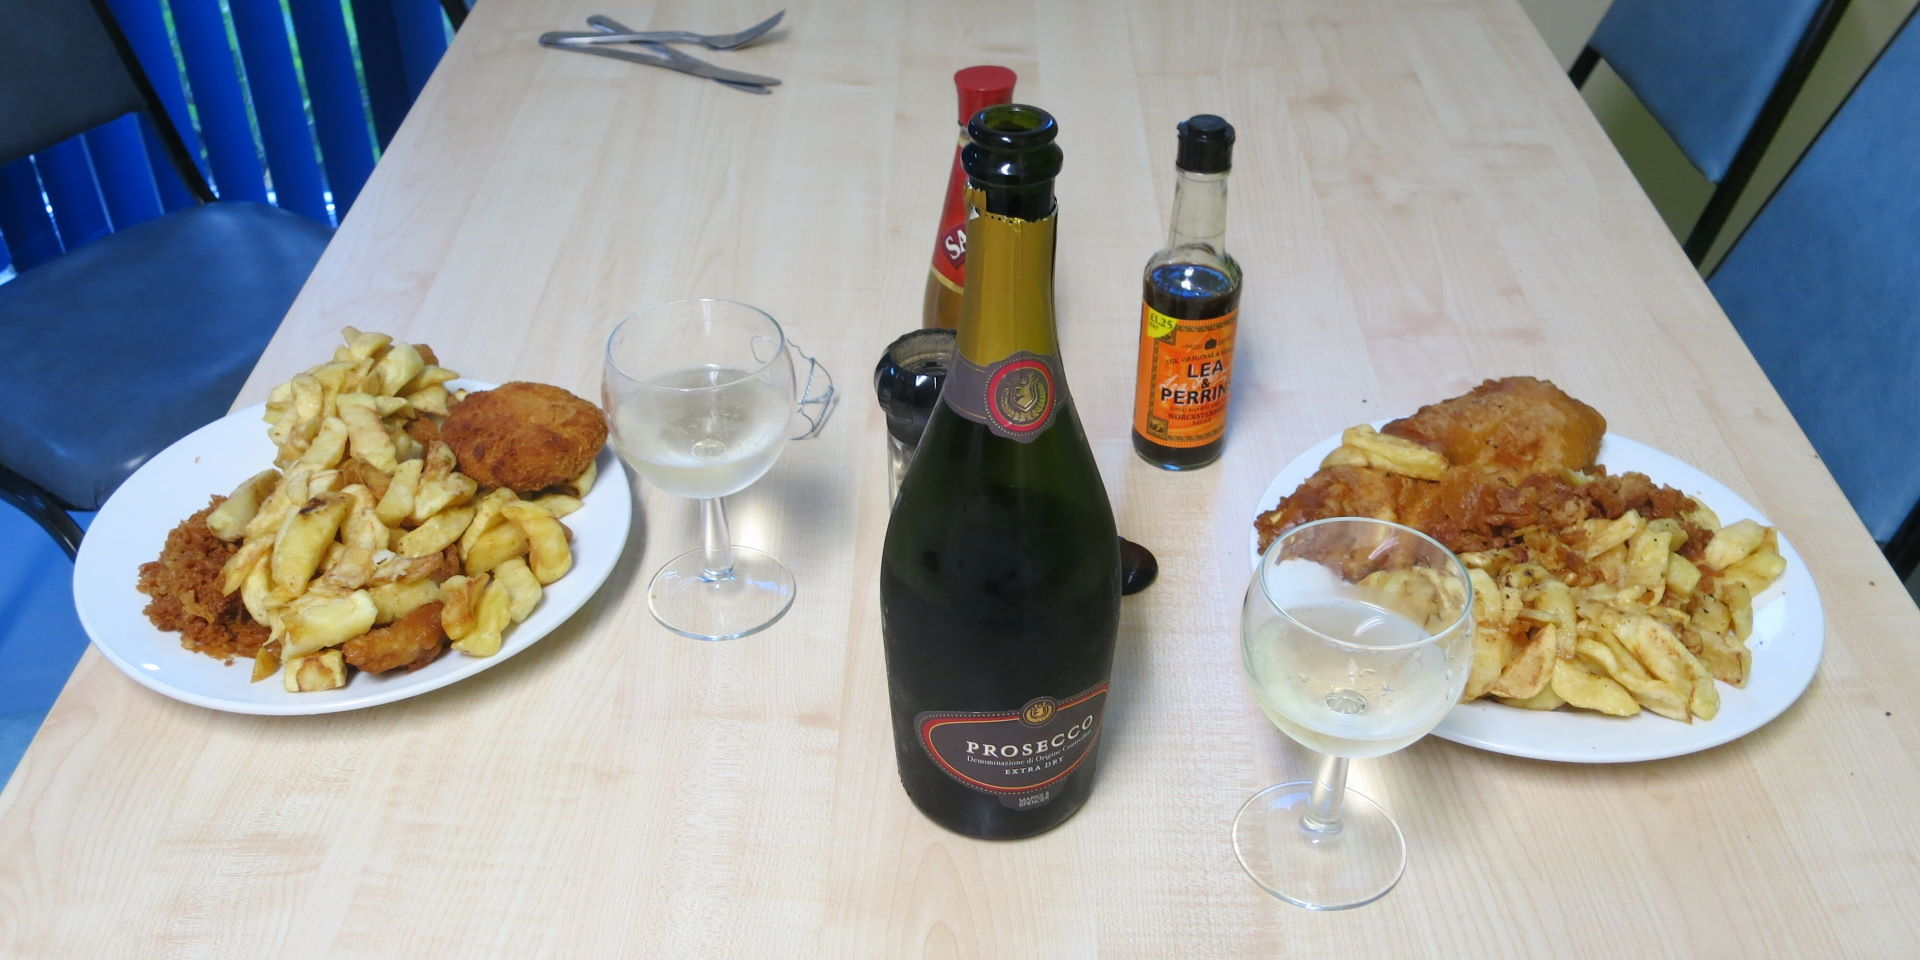 Prosecco, fish and chips